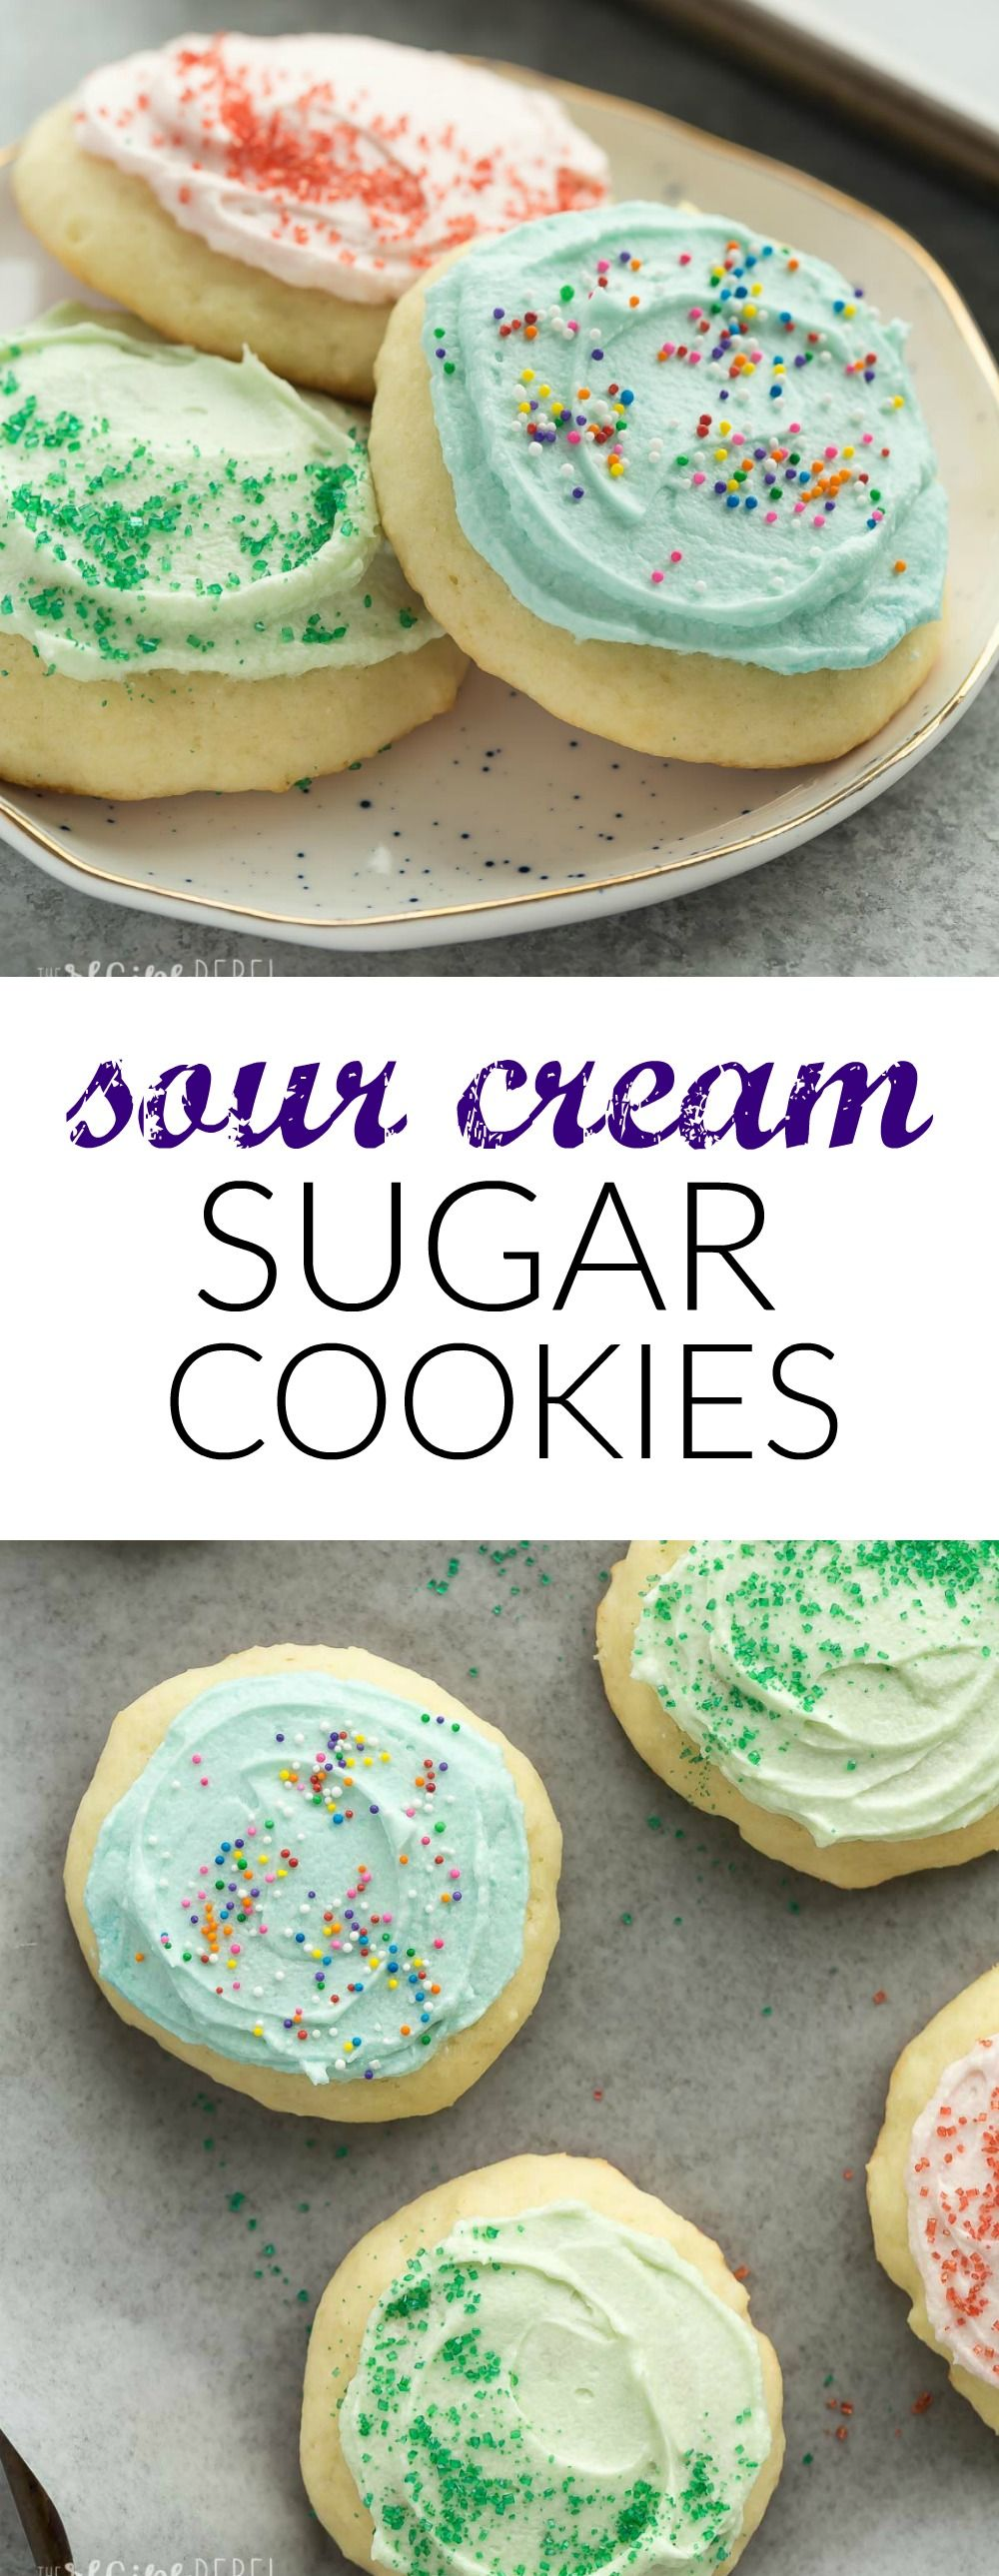 These Sour Cream Sugar Cookies Are Soft And Fluffy With Just The Right Amount Of Sweetness They Sugar Cookies Recipe Sour Cream Sugar Cookies Holiday Baking